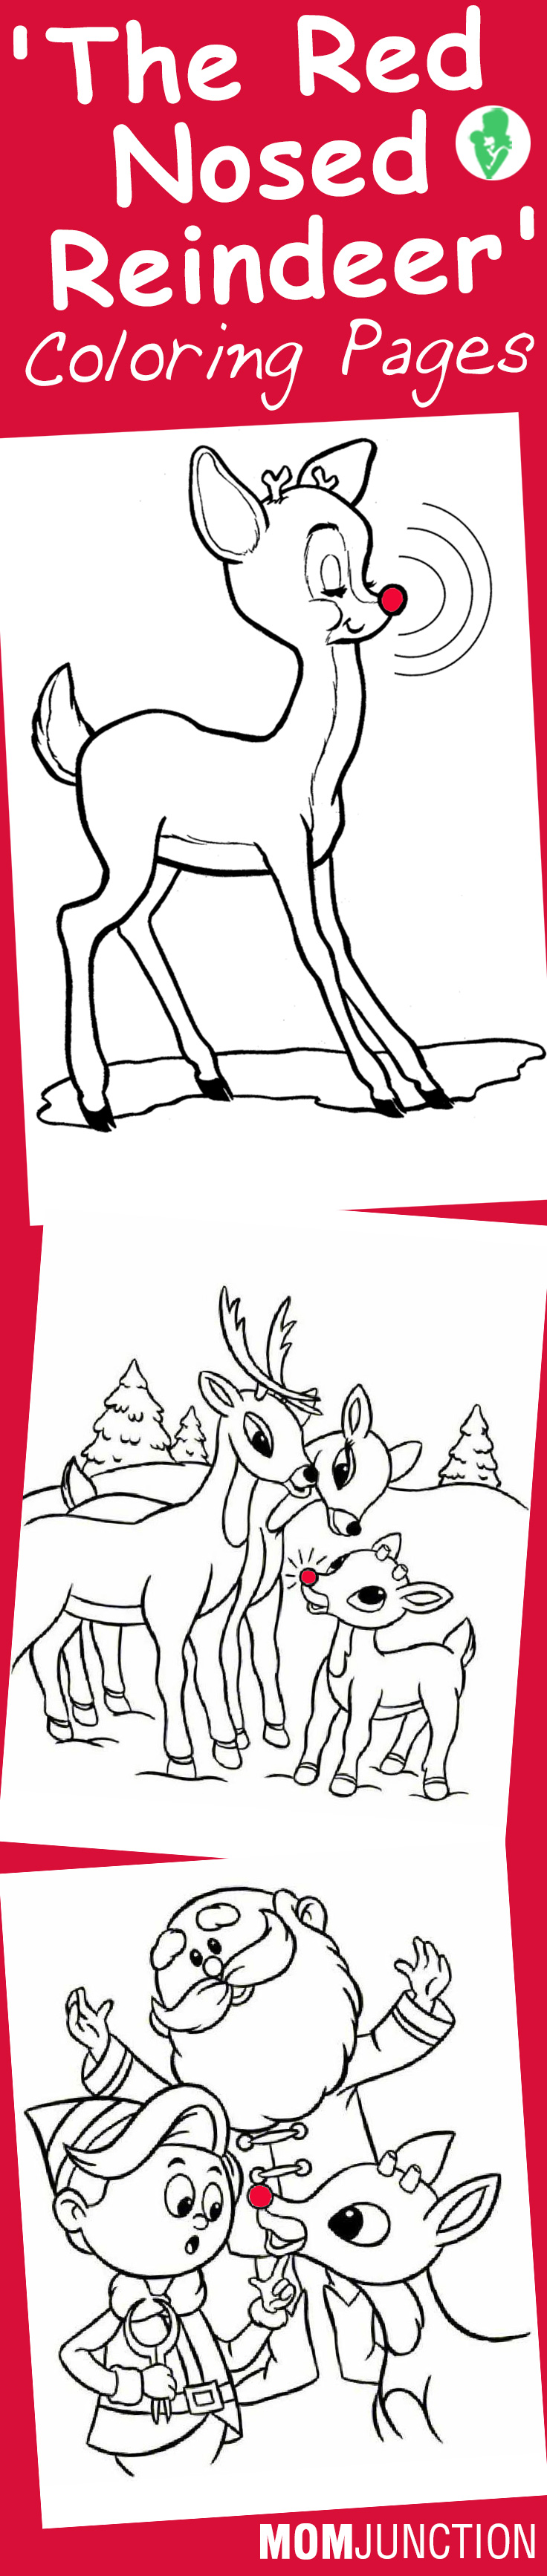 Free printable coloring pages rudolph red nosed reindeer - Top 20 Free Printable Rudolph The Red Nosed Reindeer Coloring Pages Online